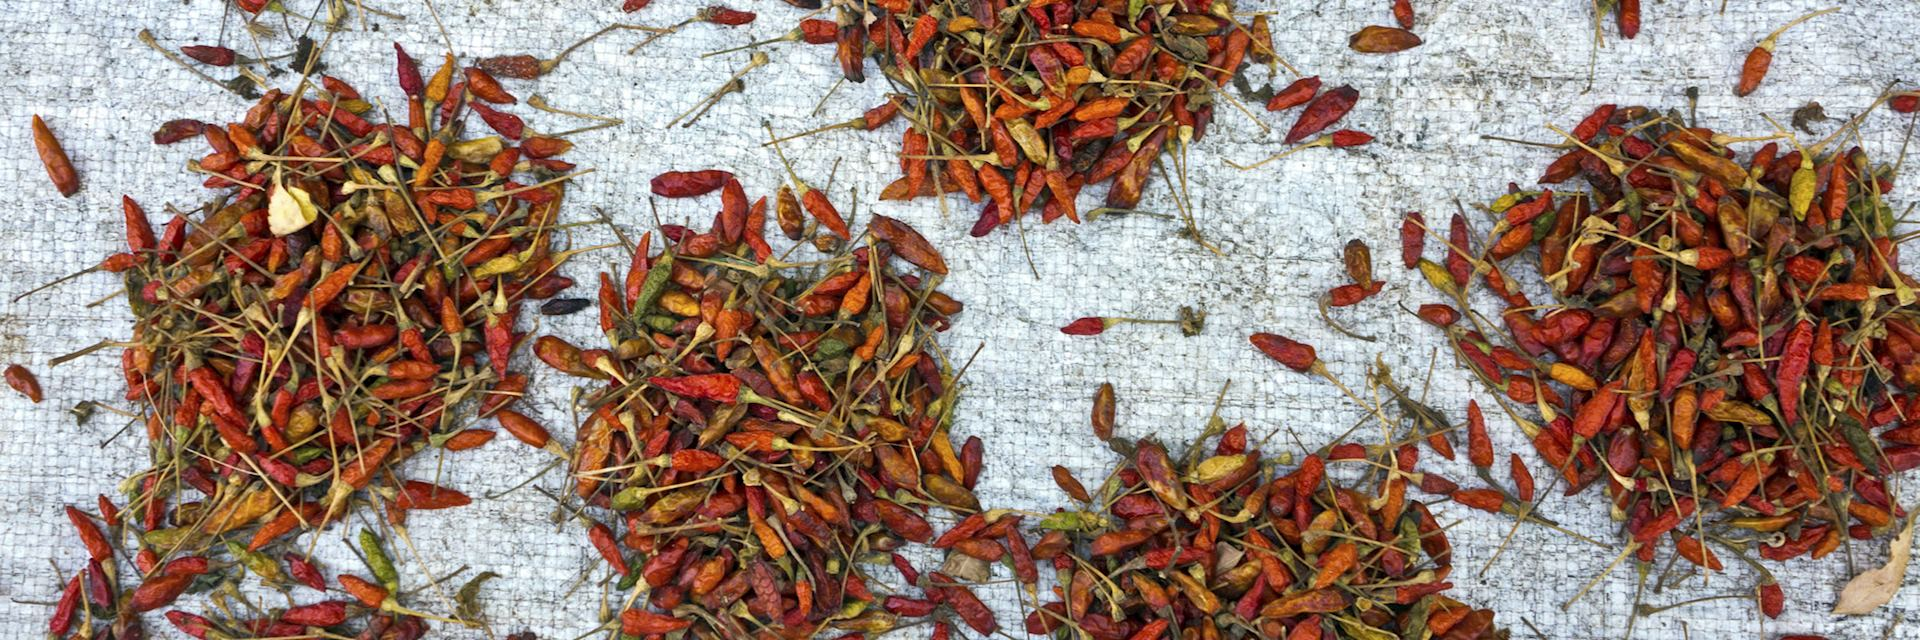 Chillies drying in a Mozambique market